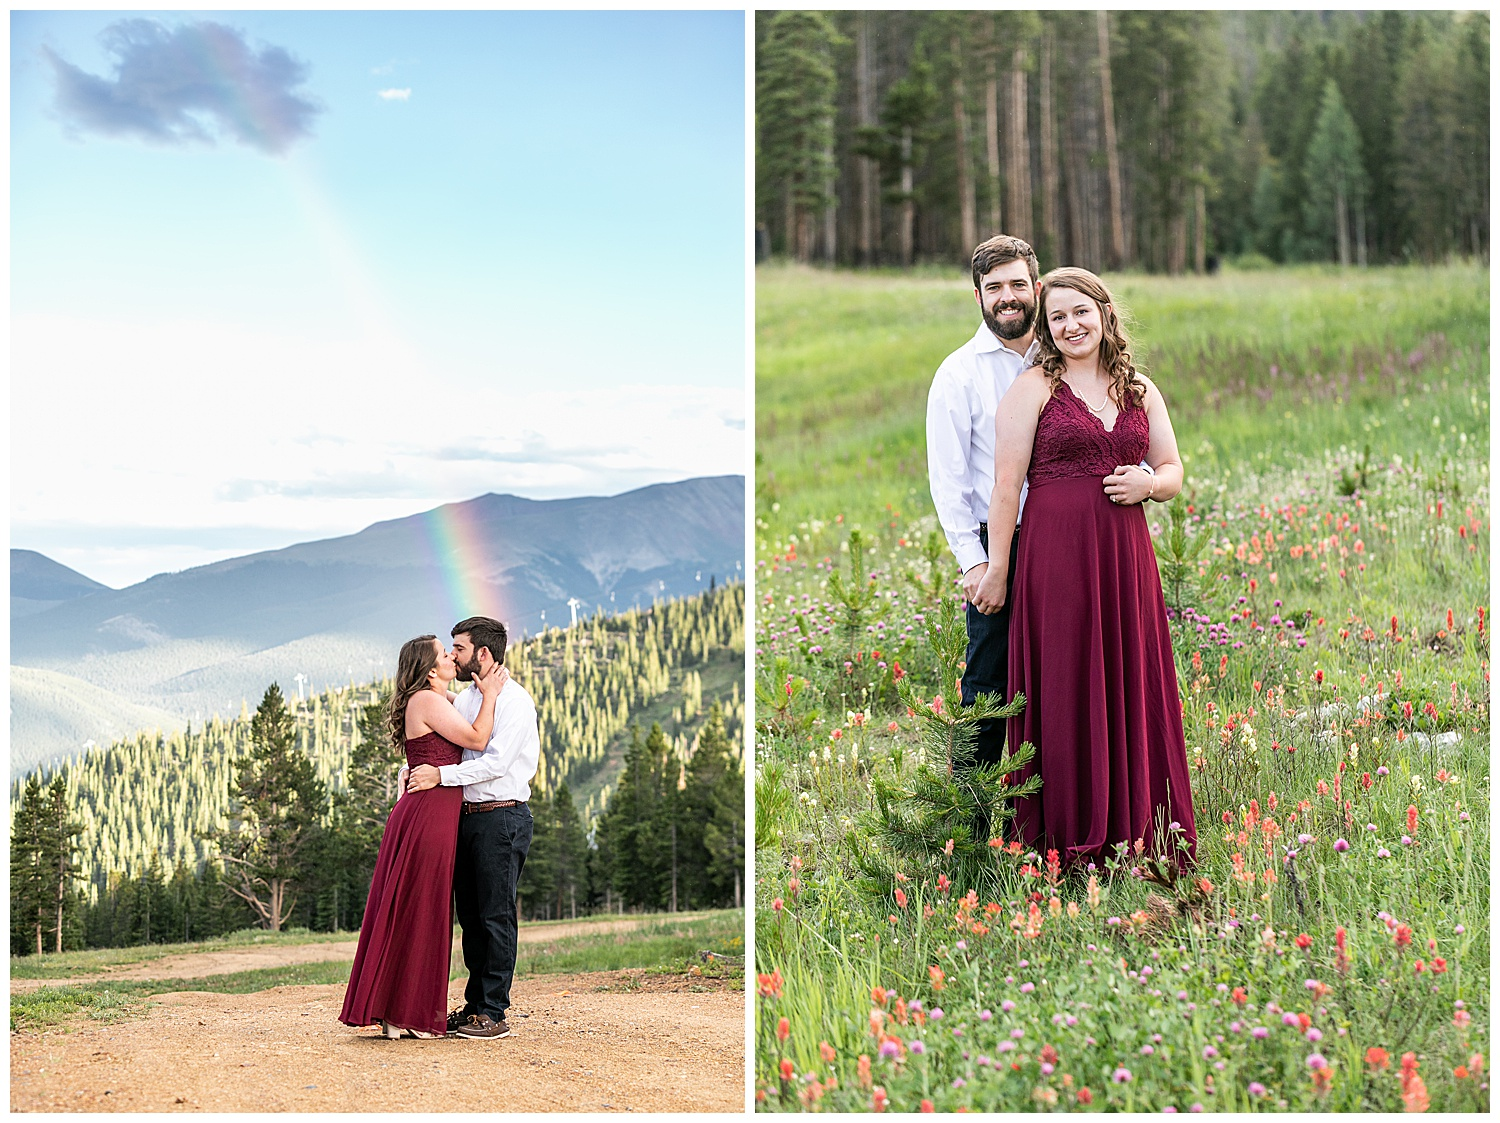 Molly + Ryan Breckenridge Destination Engagement Session Living Radiant Photography_0029.jpg